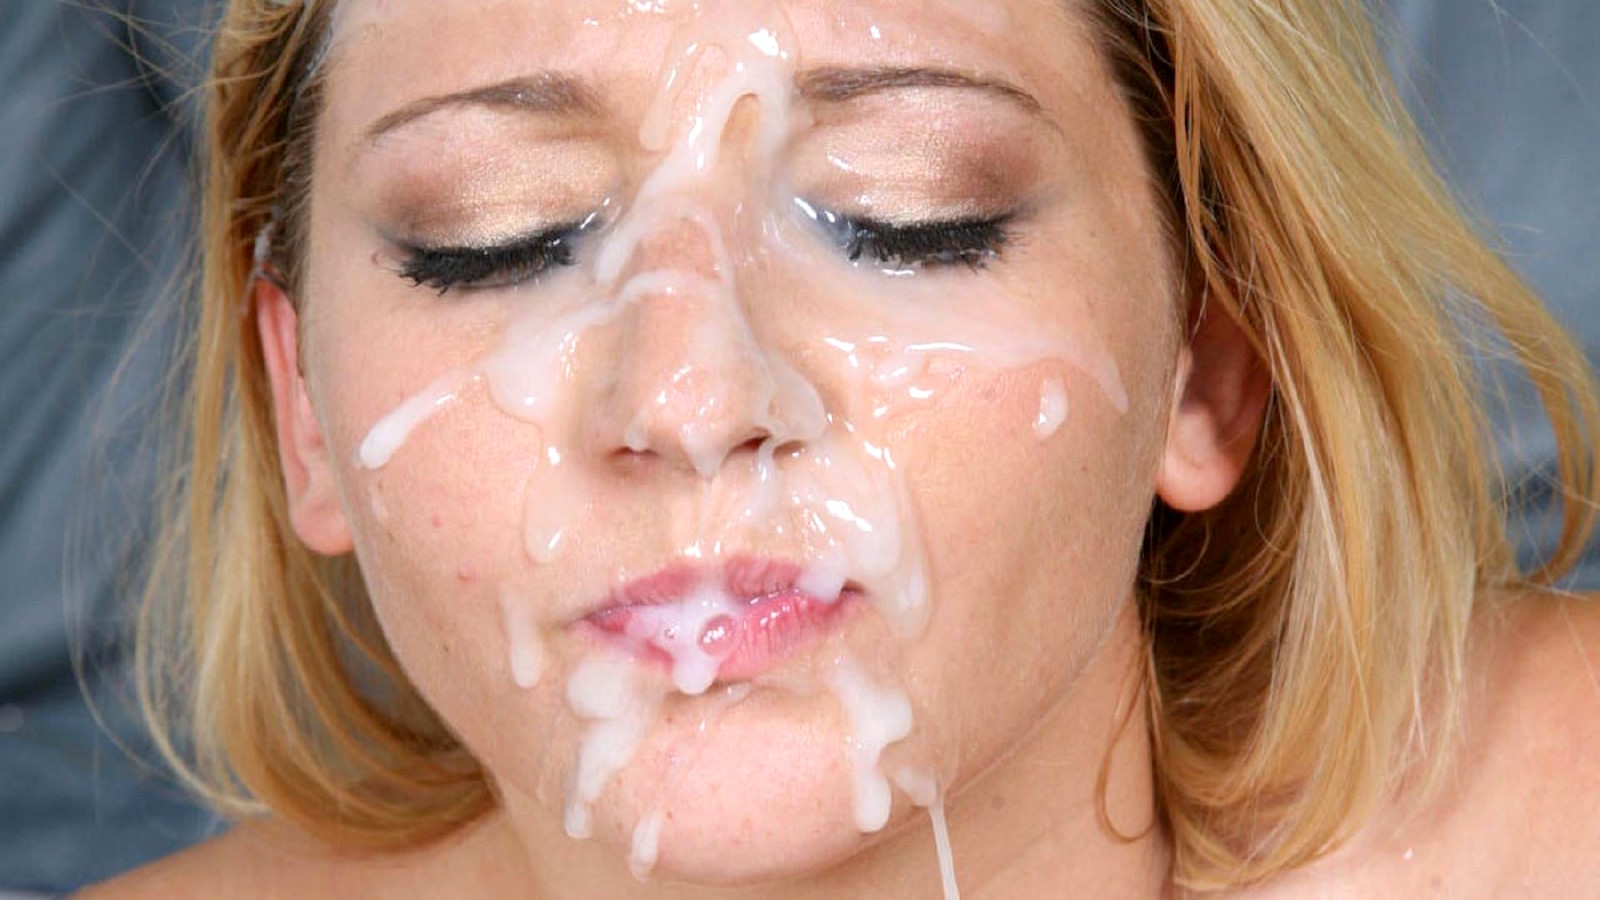 Facial cum shot porn videos #5